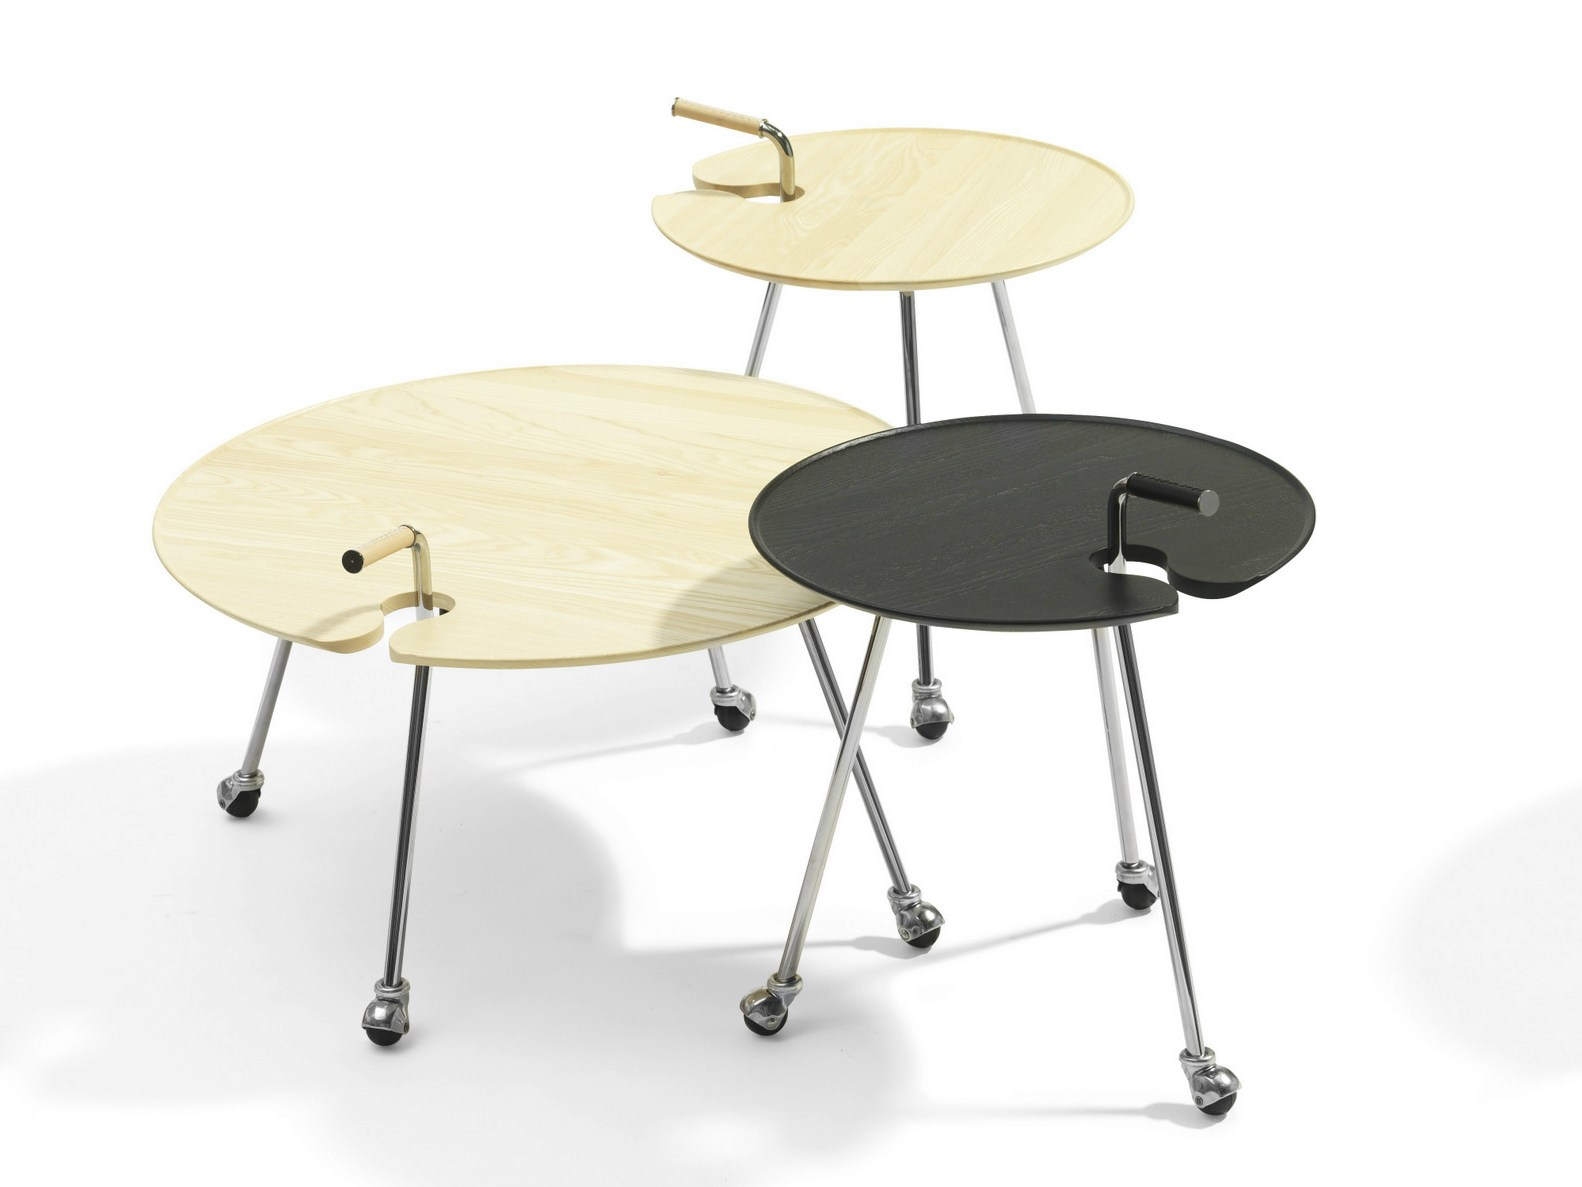 Round Coffee Table On Wheels Round Coffee Table With Casters Pond By Blå Station Design